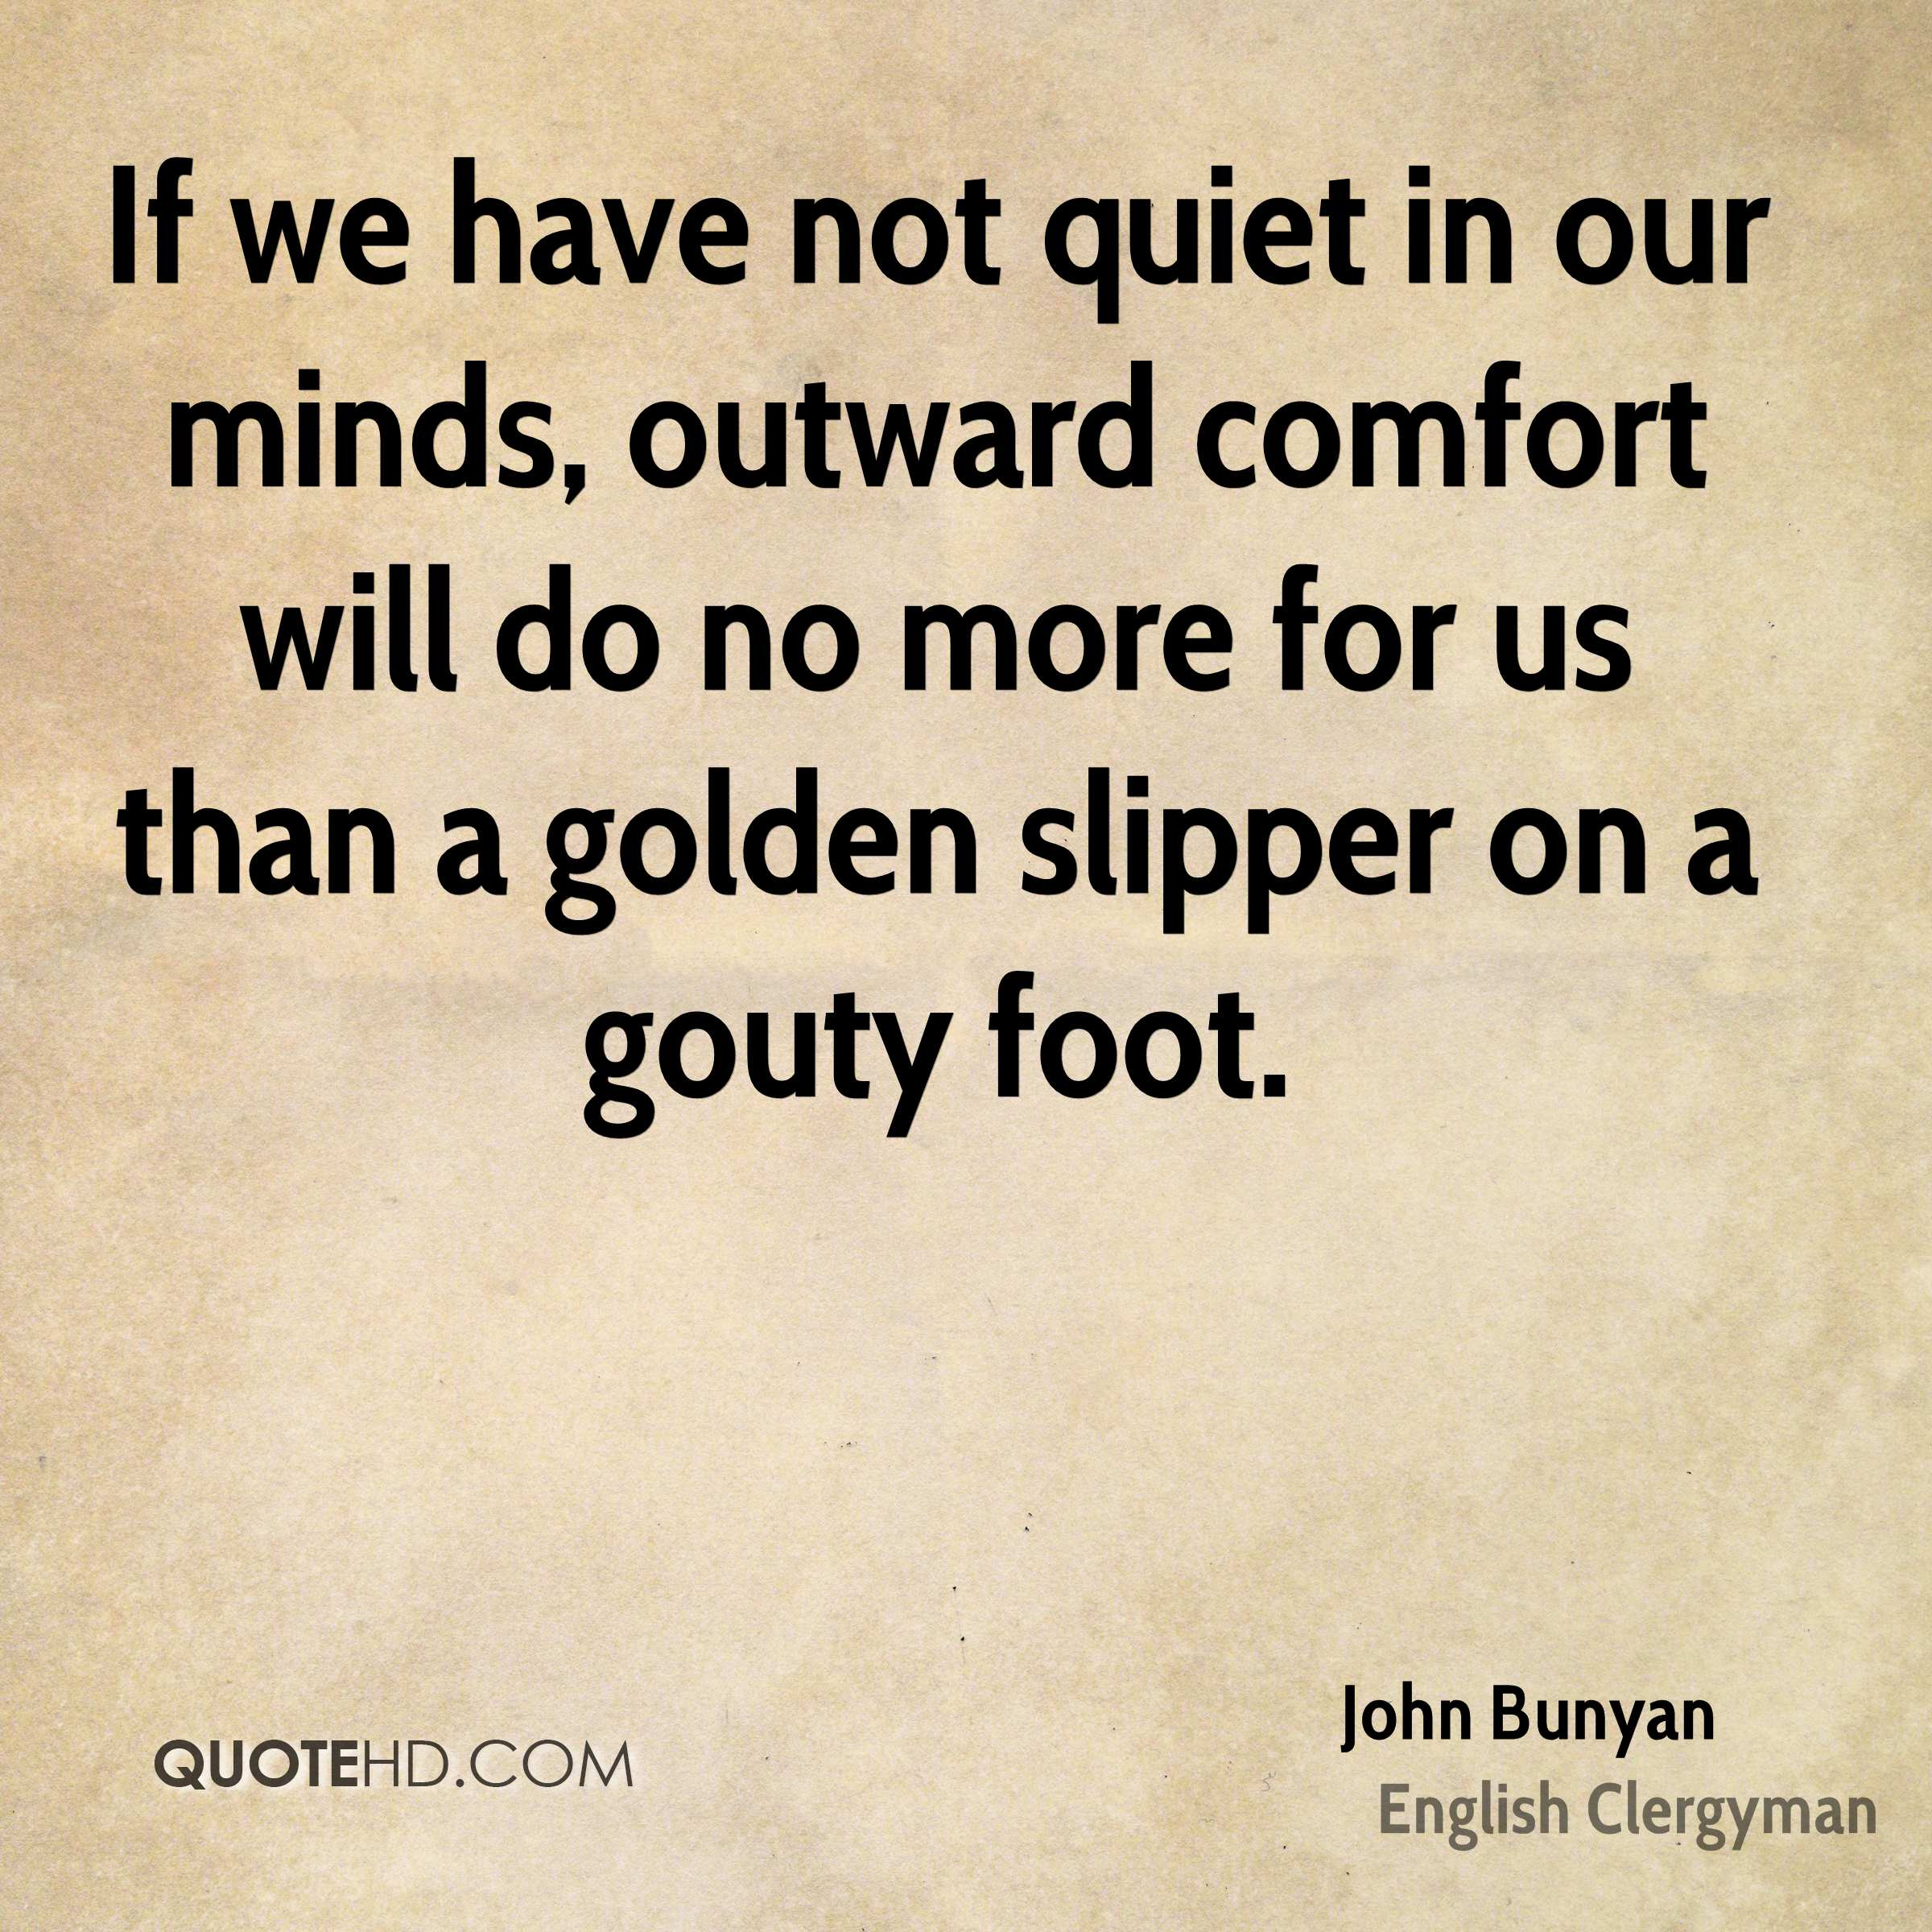 If we have not quiet in our minds, outward comfort will do no more for us than a golden slipper on a gouty foot.